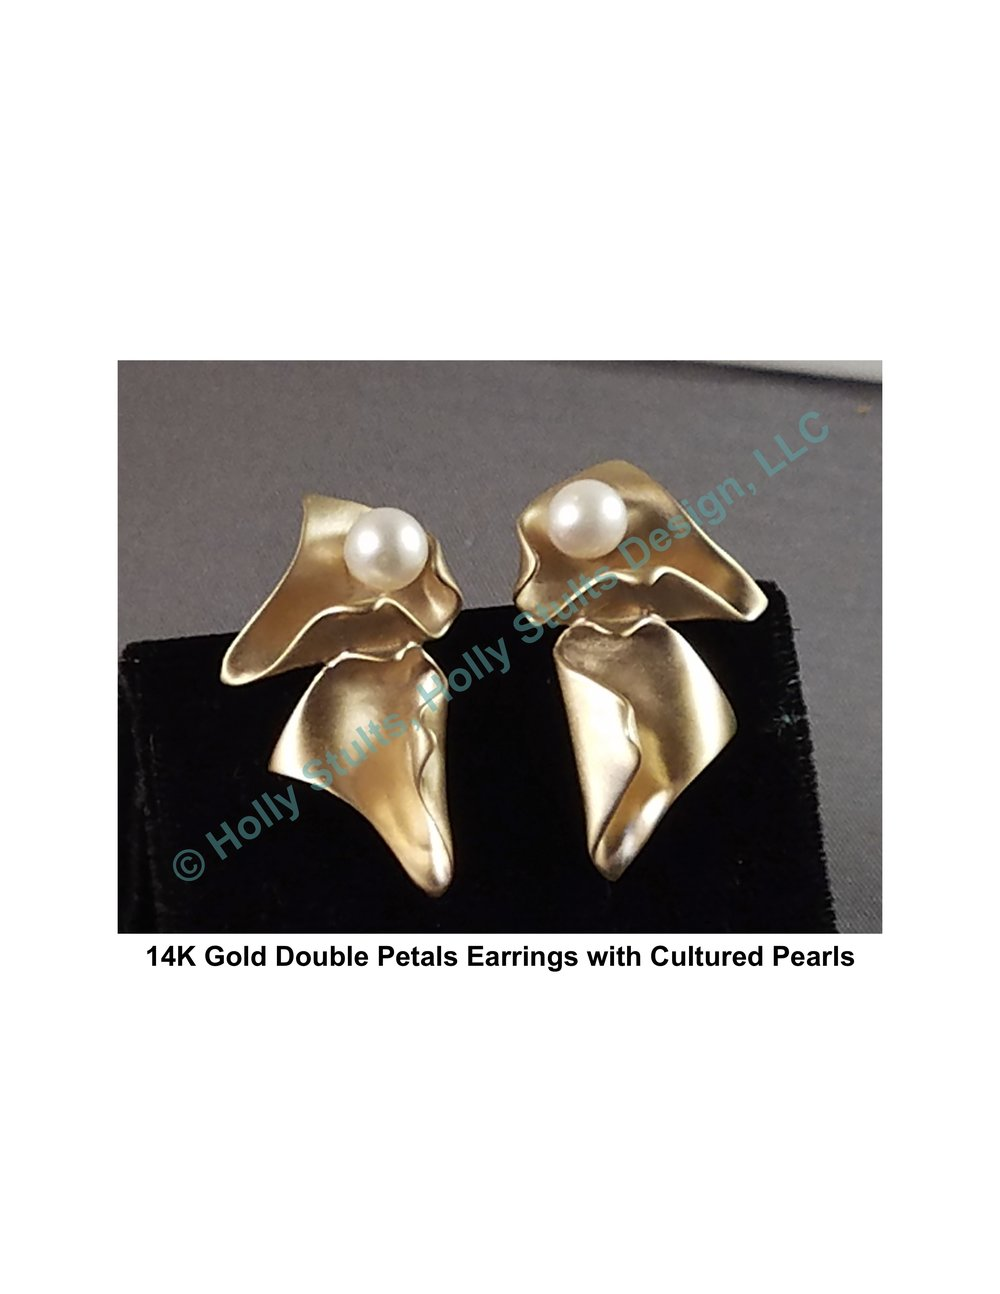 14K Gold Double Petals Earrings with Cultured Pearls.jpg